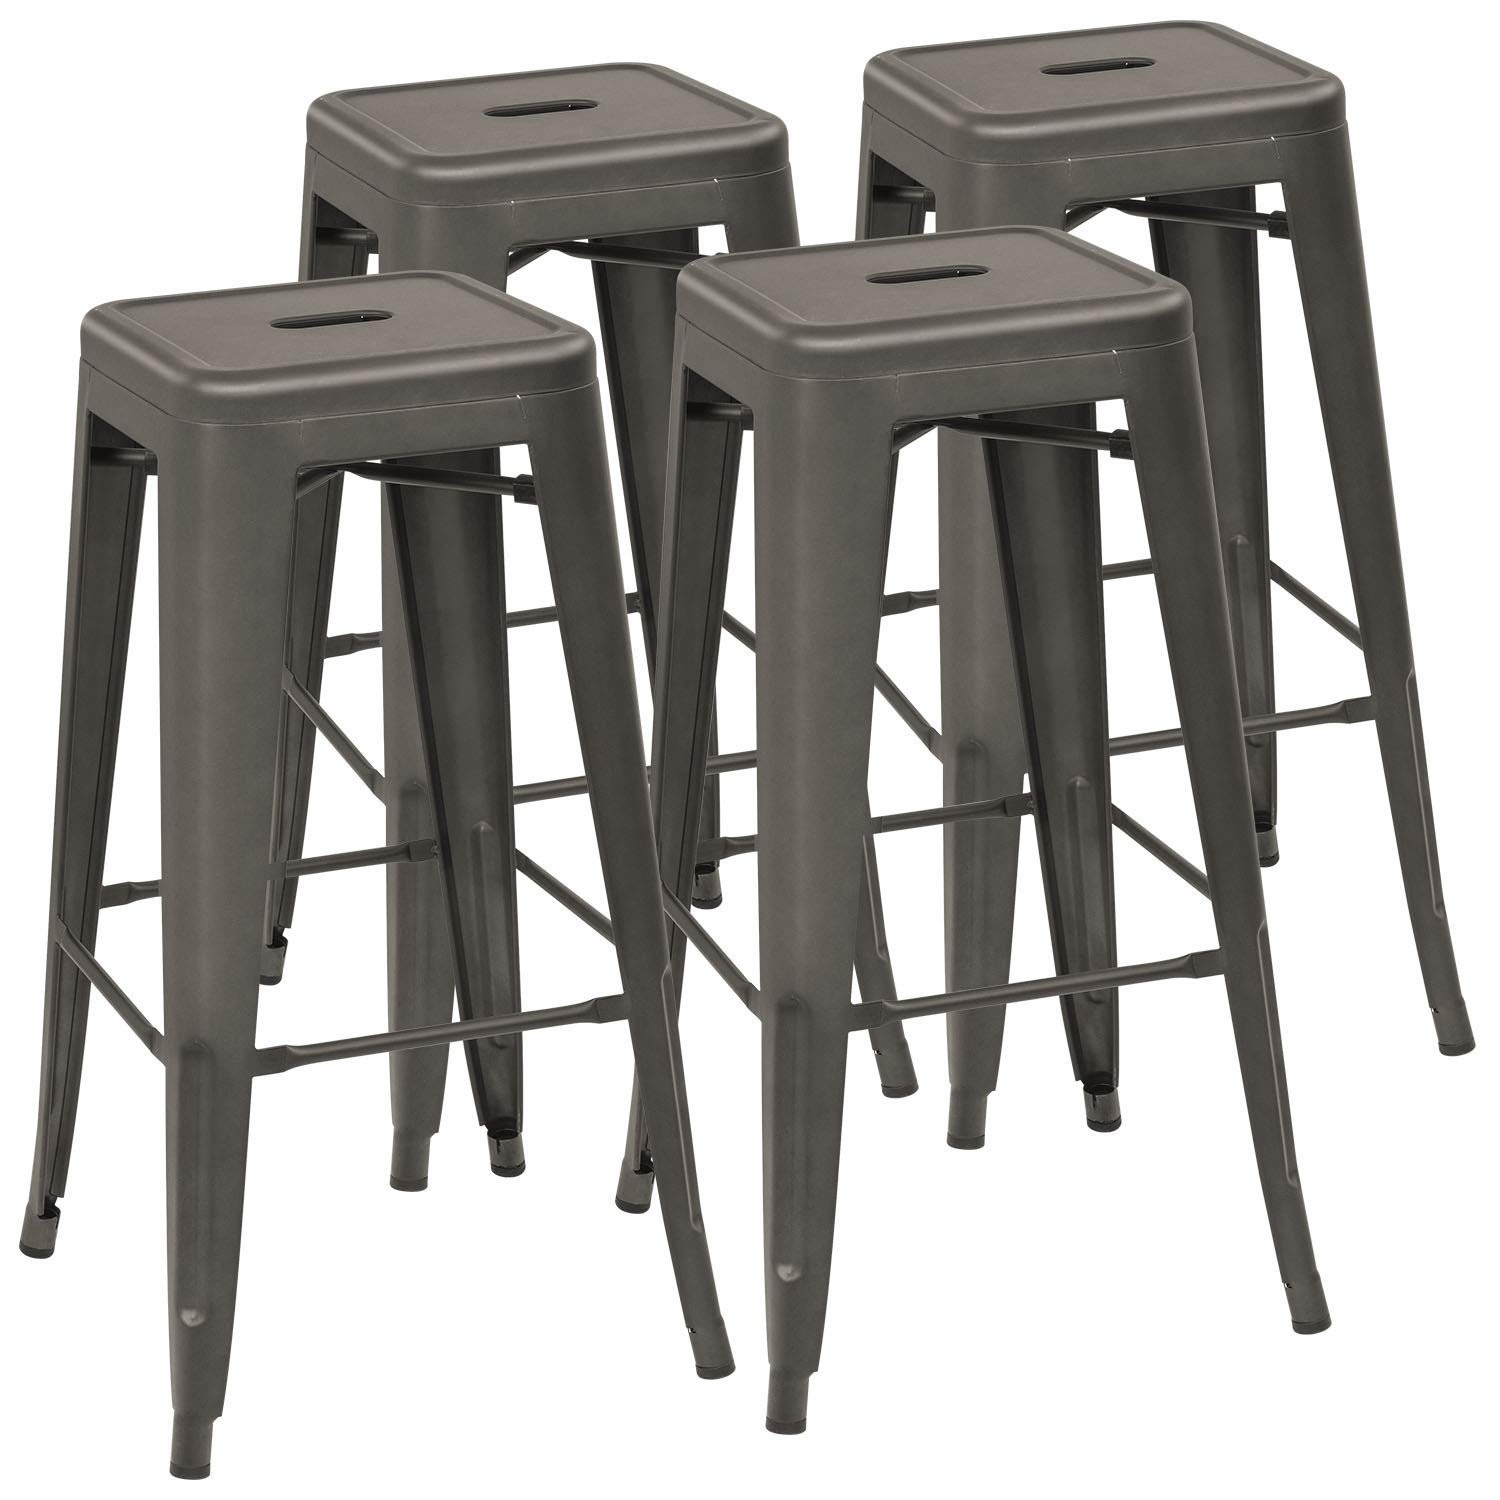 Devoko Metal Bar Stool 30'' Tolix Style Indoor/Outdoor Barstool Modern Industrial Backless Light Weight Bar Stools with Square Seat Set of 4 (Gun) by Devoko